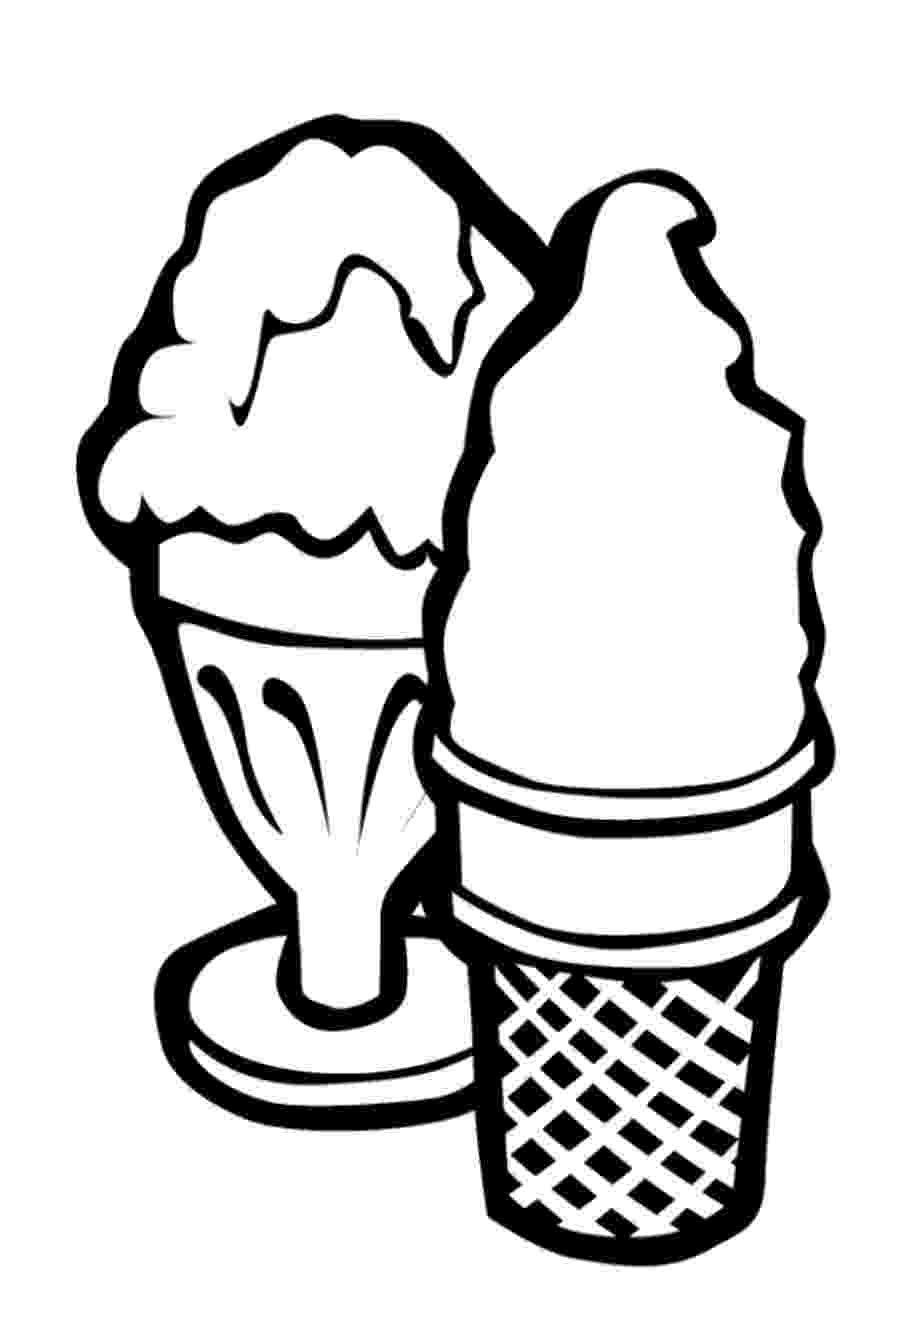 coloring sheet ice cream ice cream coloring pages download and print for free cream ice sheet coloring